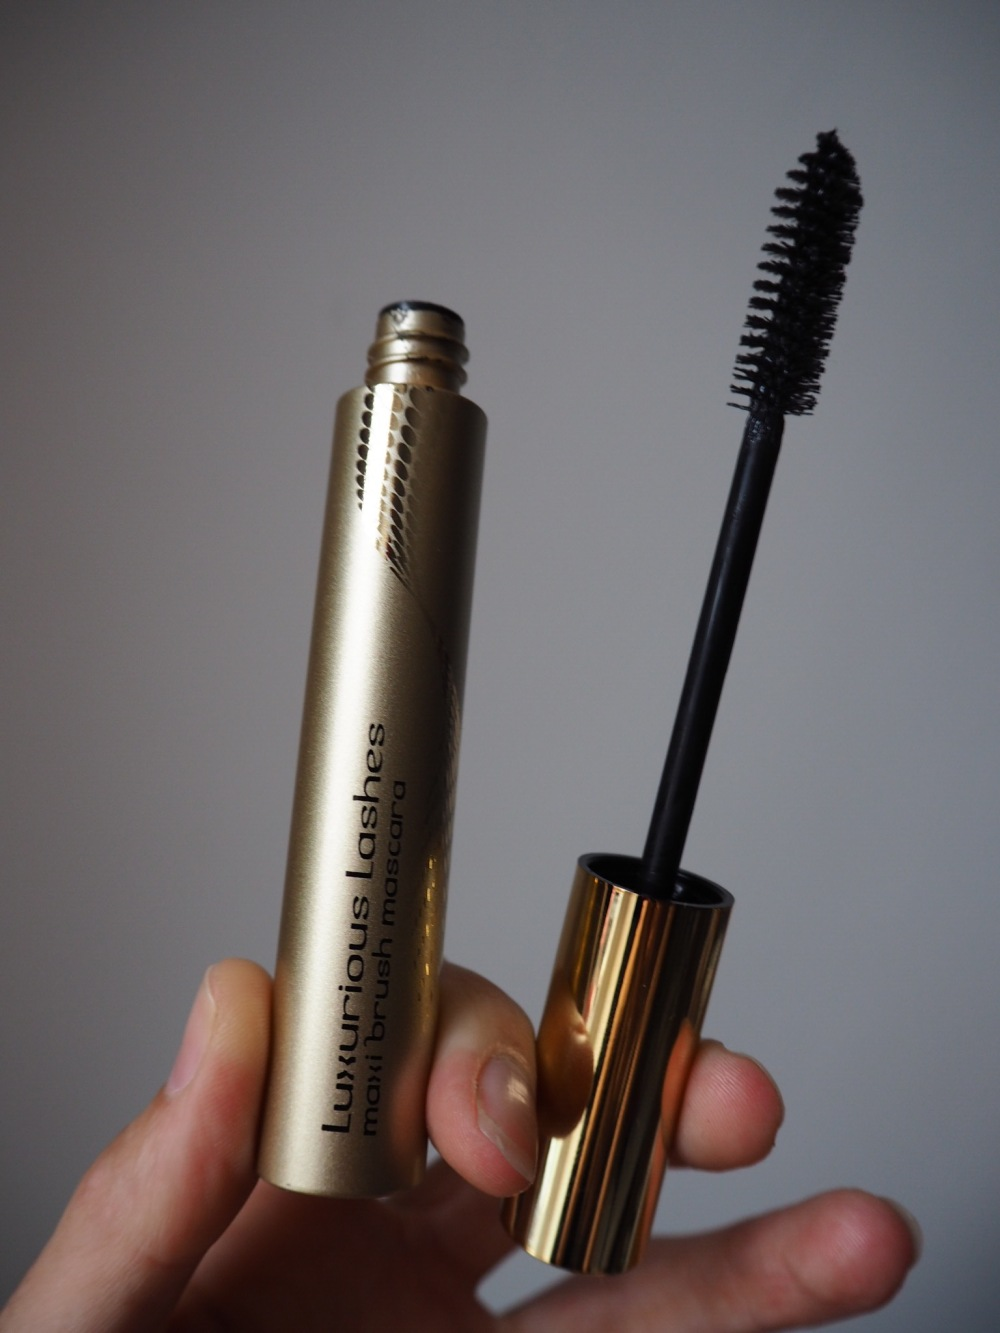 luxurious lashes mascara by kiko packaging and brush